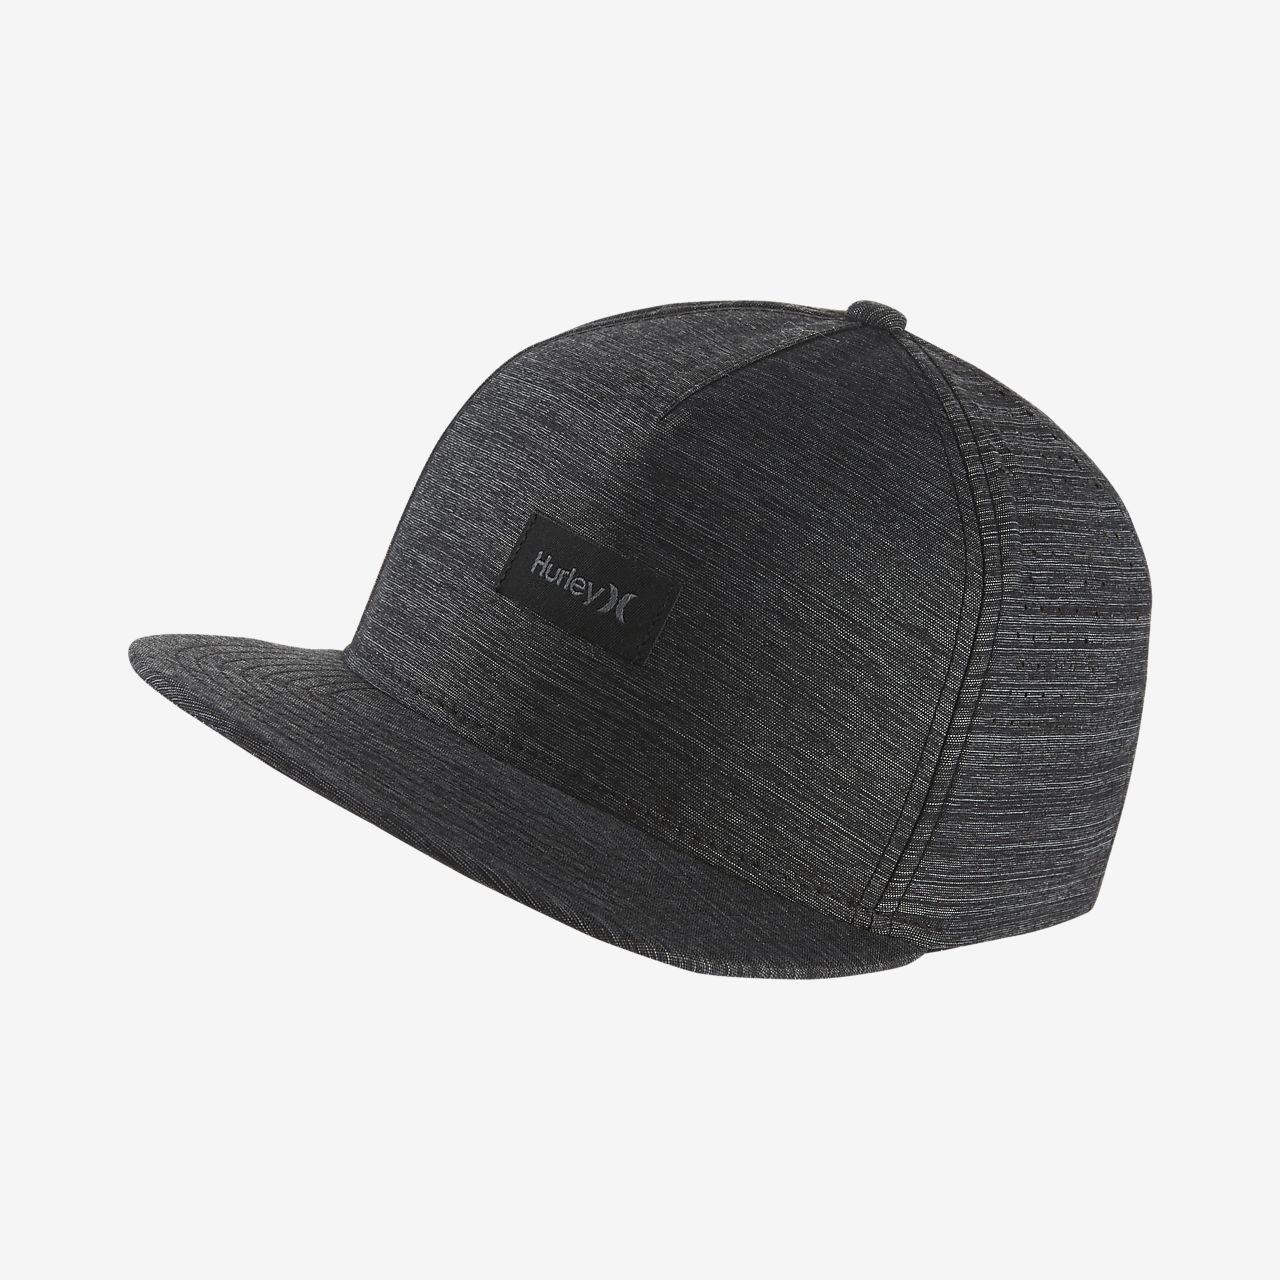 pretty nice ca2bf d5a84 italy hurley mha5590 blai nike dri fit icon embroidered hat d14bf bff22   coupon code for hurley dri fit staple adjustable hat 295e3 f786a